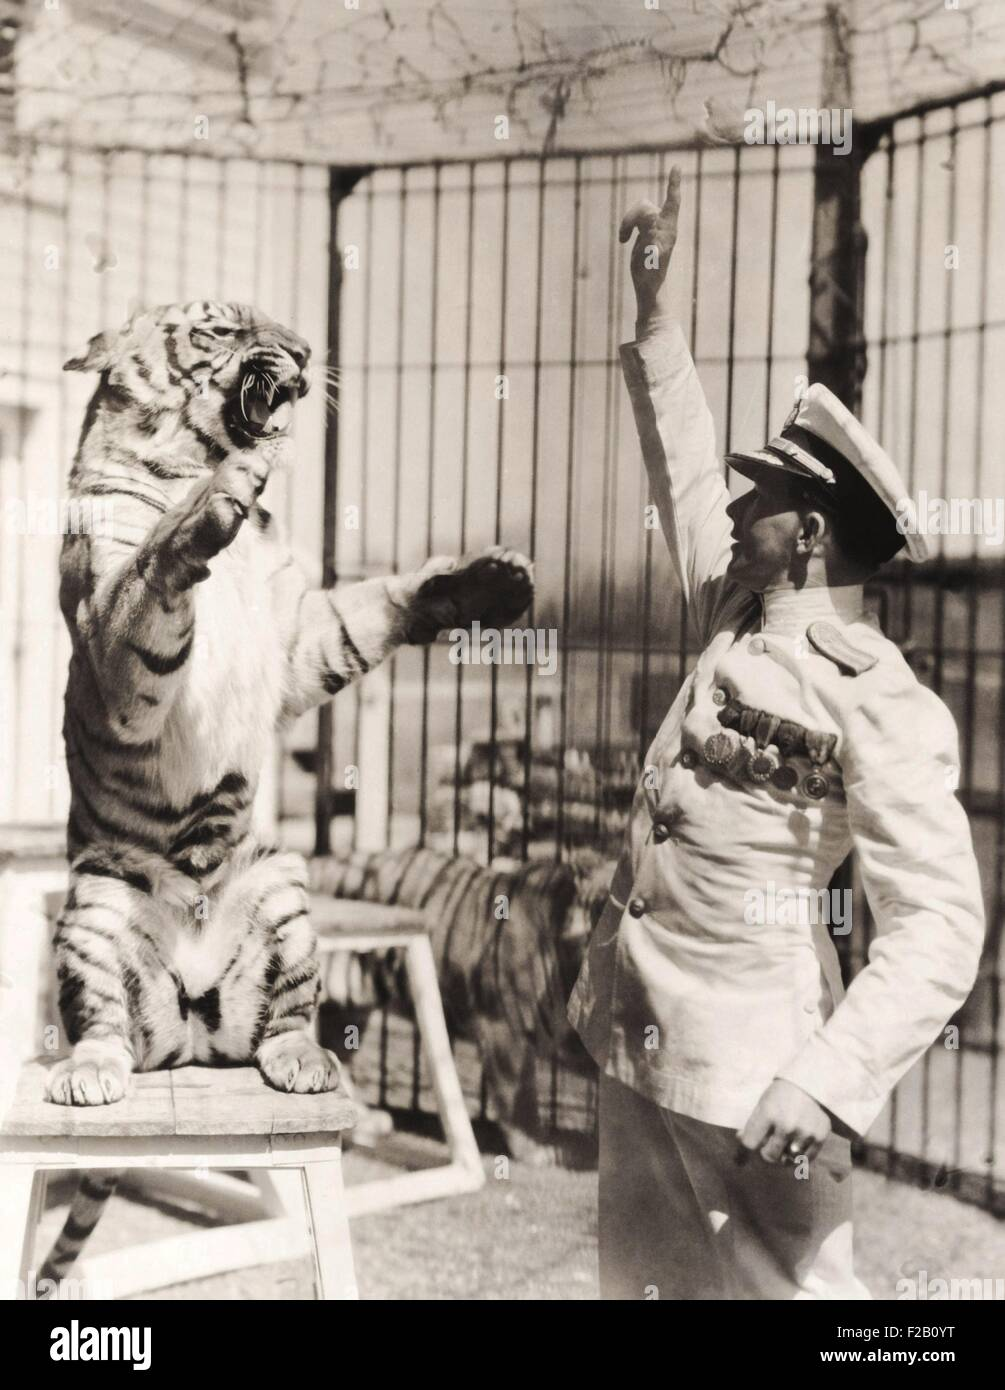 Capt. Roman Proske, an animal trainer born in Vienna in 1898. At age 13 he ran away from home to join the circus. - Stock Image